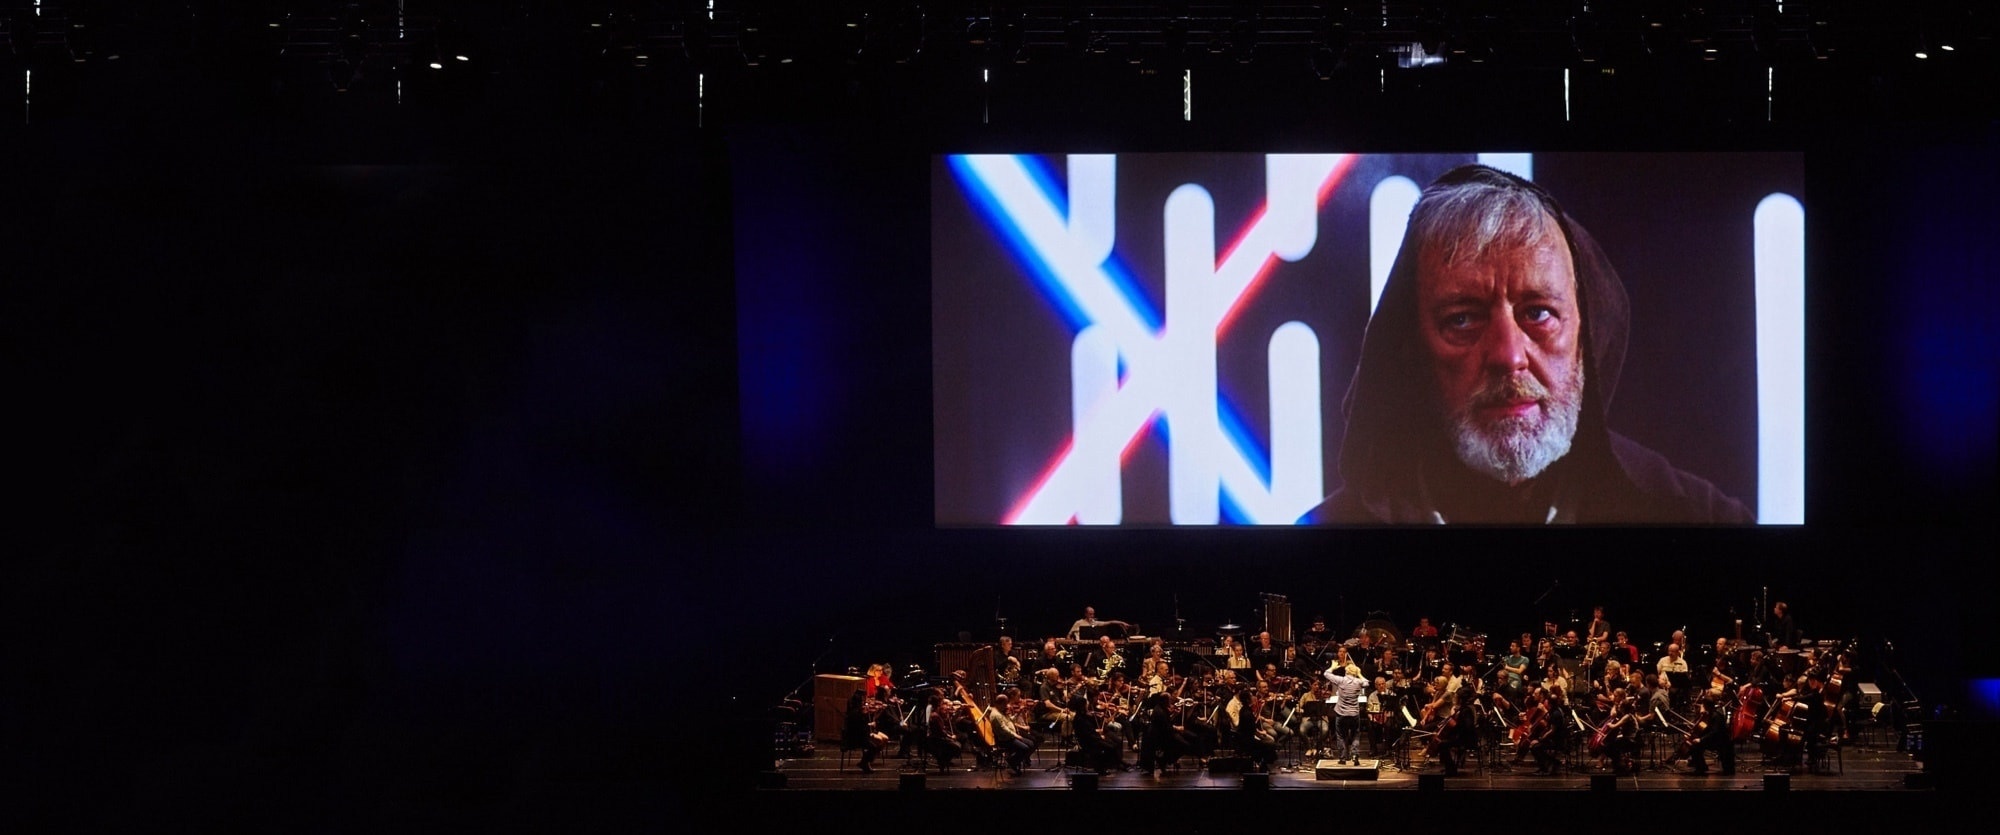 Star Wars | A New Hope in Concert